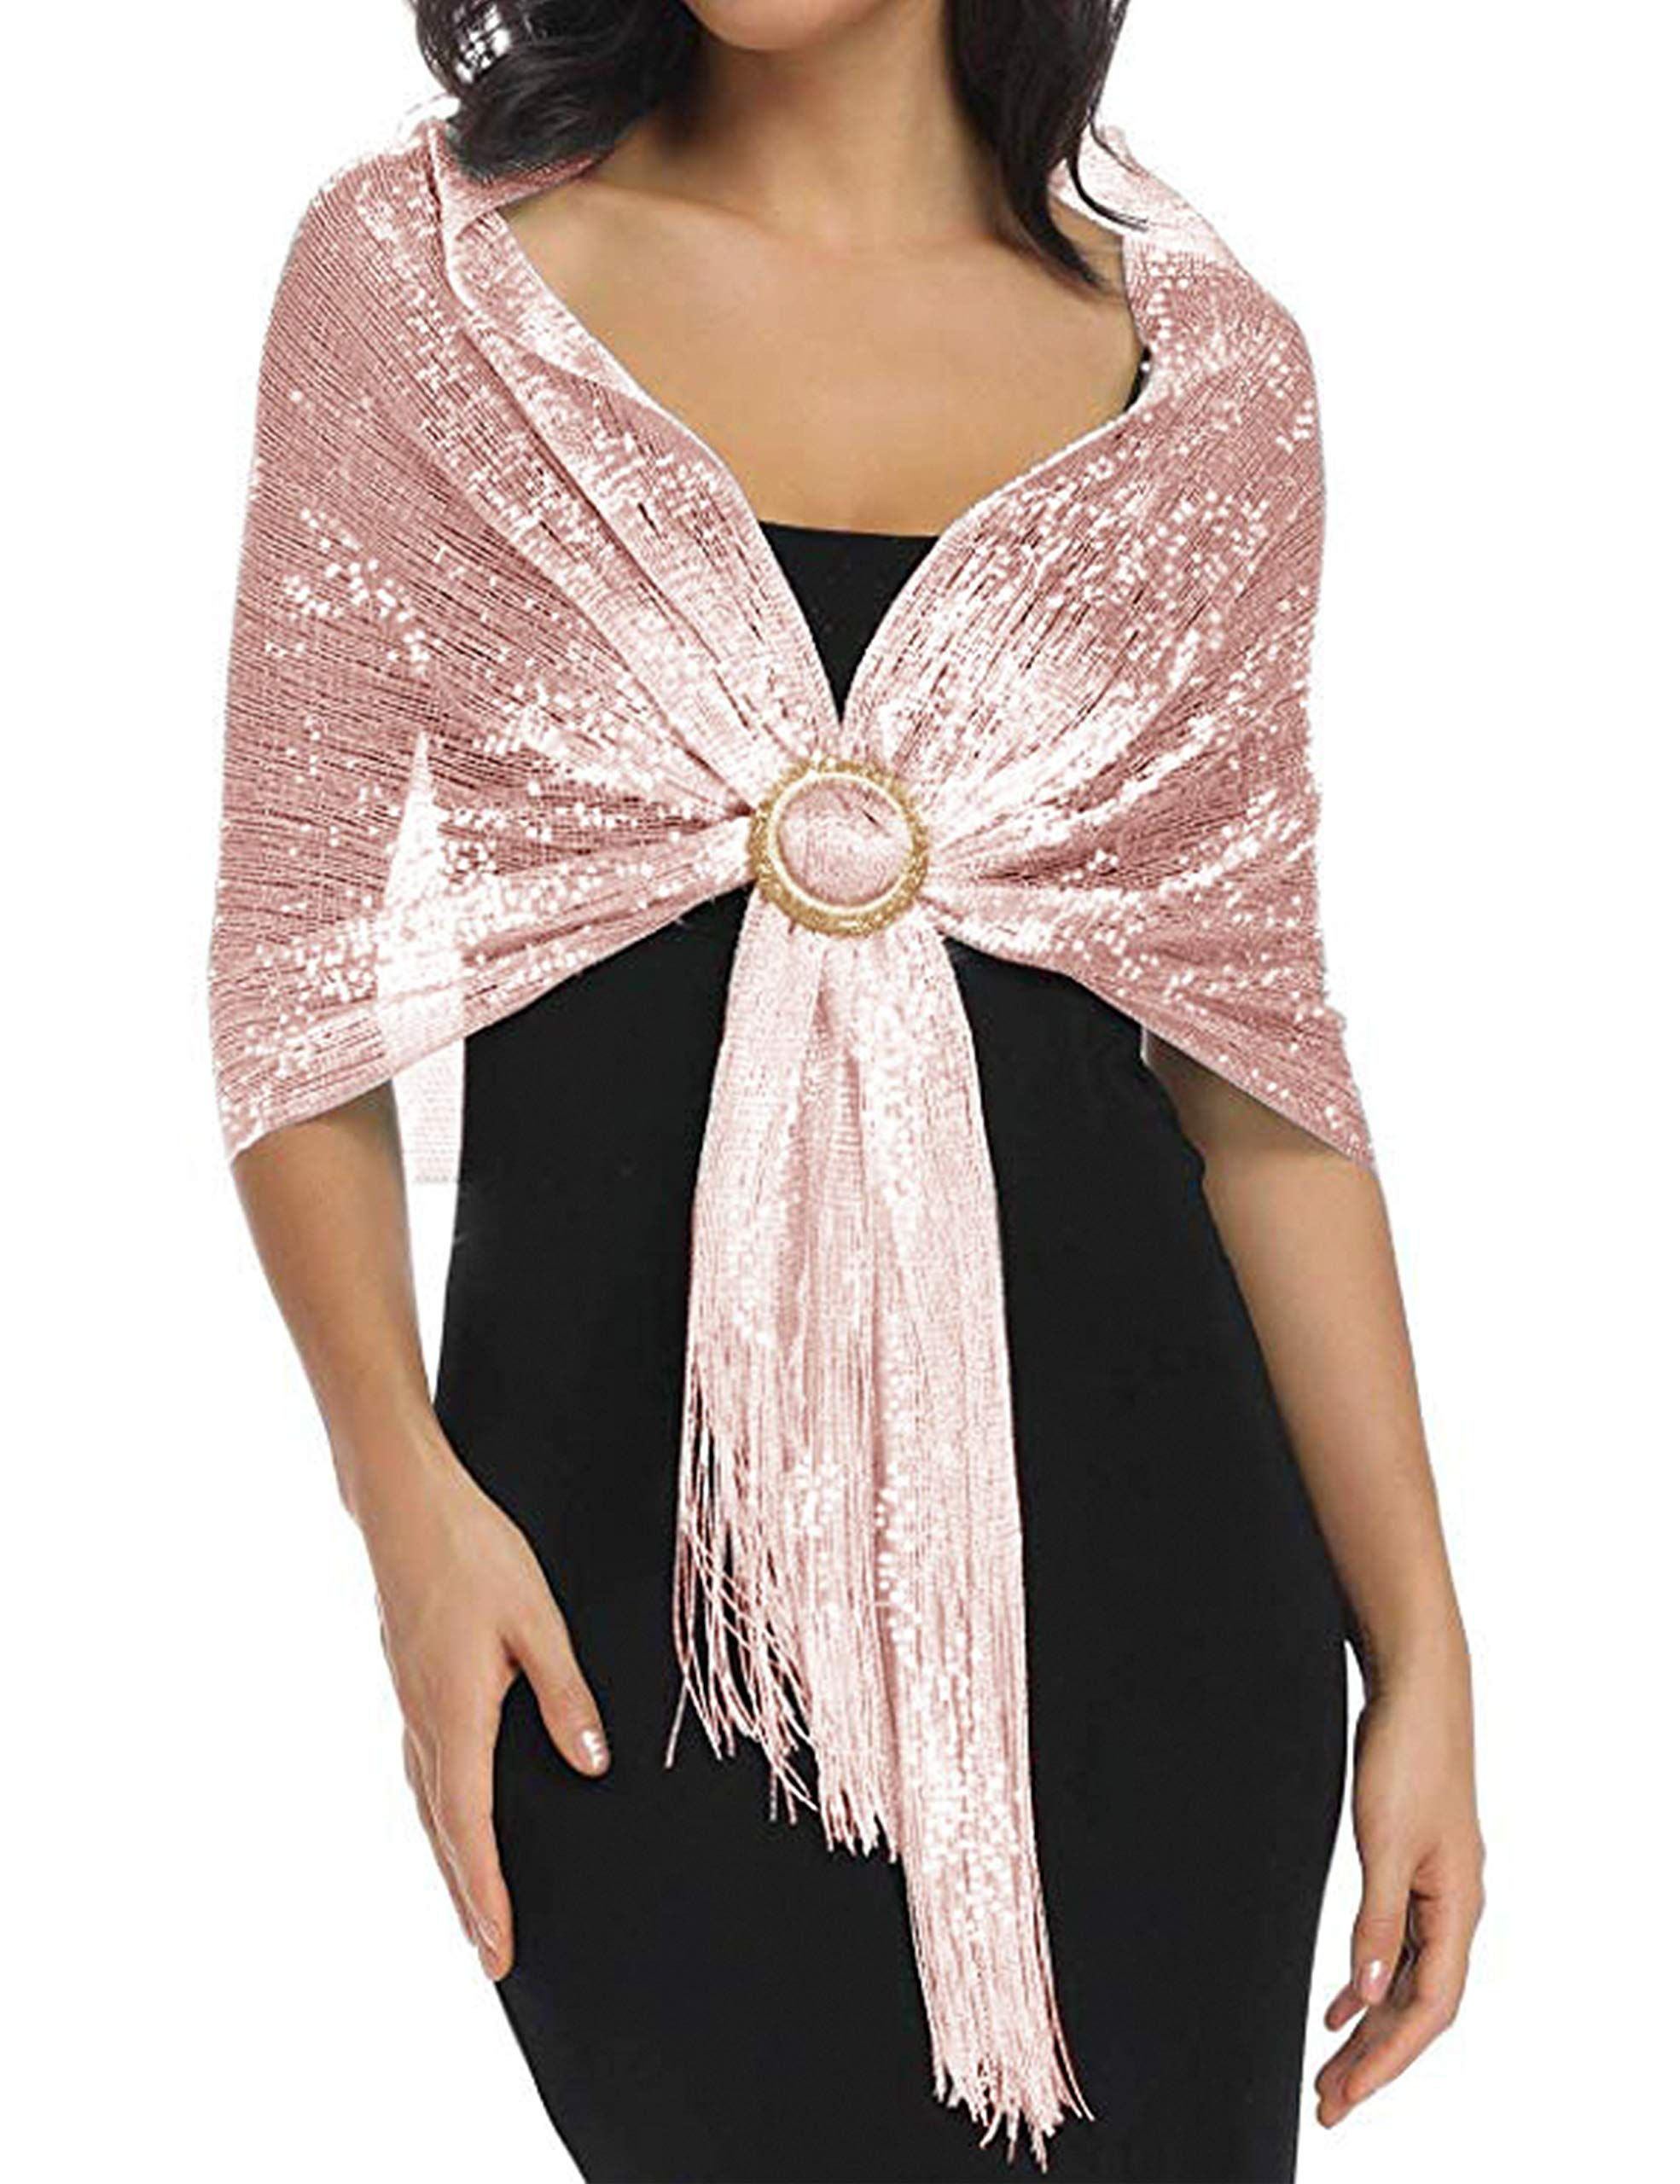 Shawls and Wraps for Evening Dresses,Wedding Shawl and Wrap